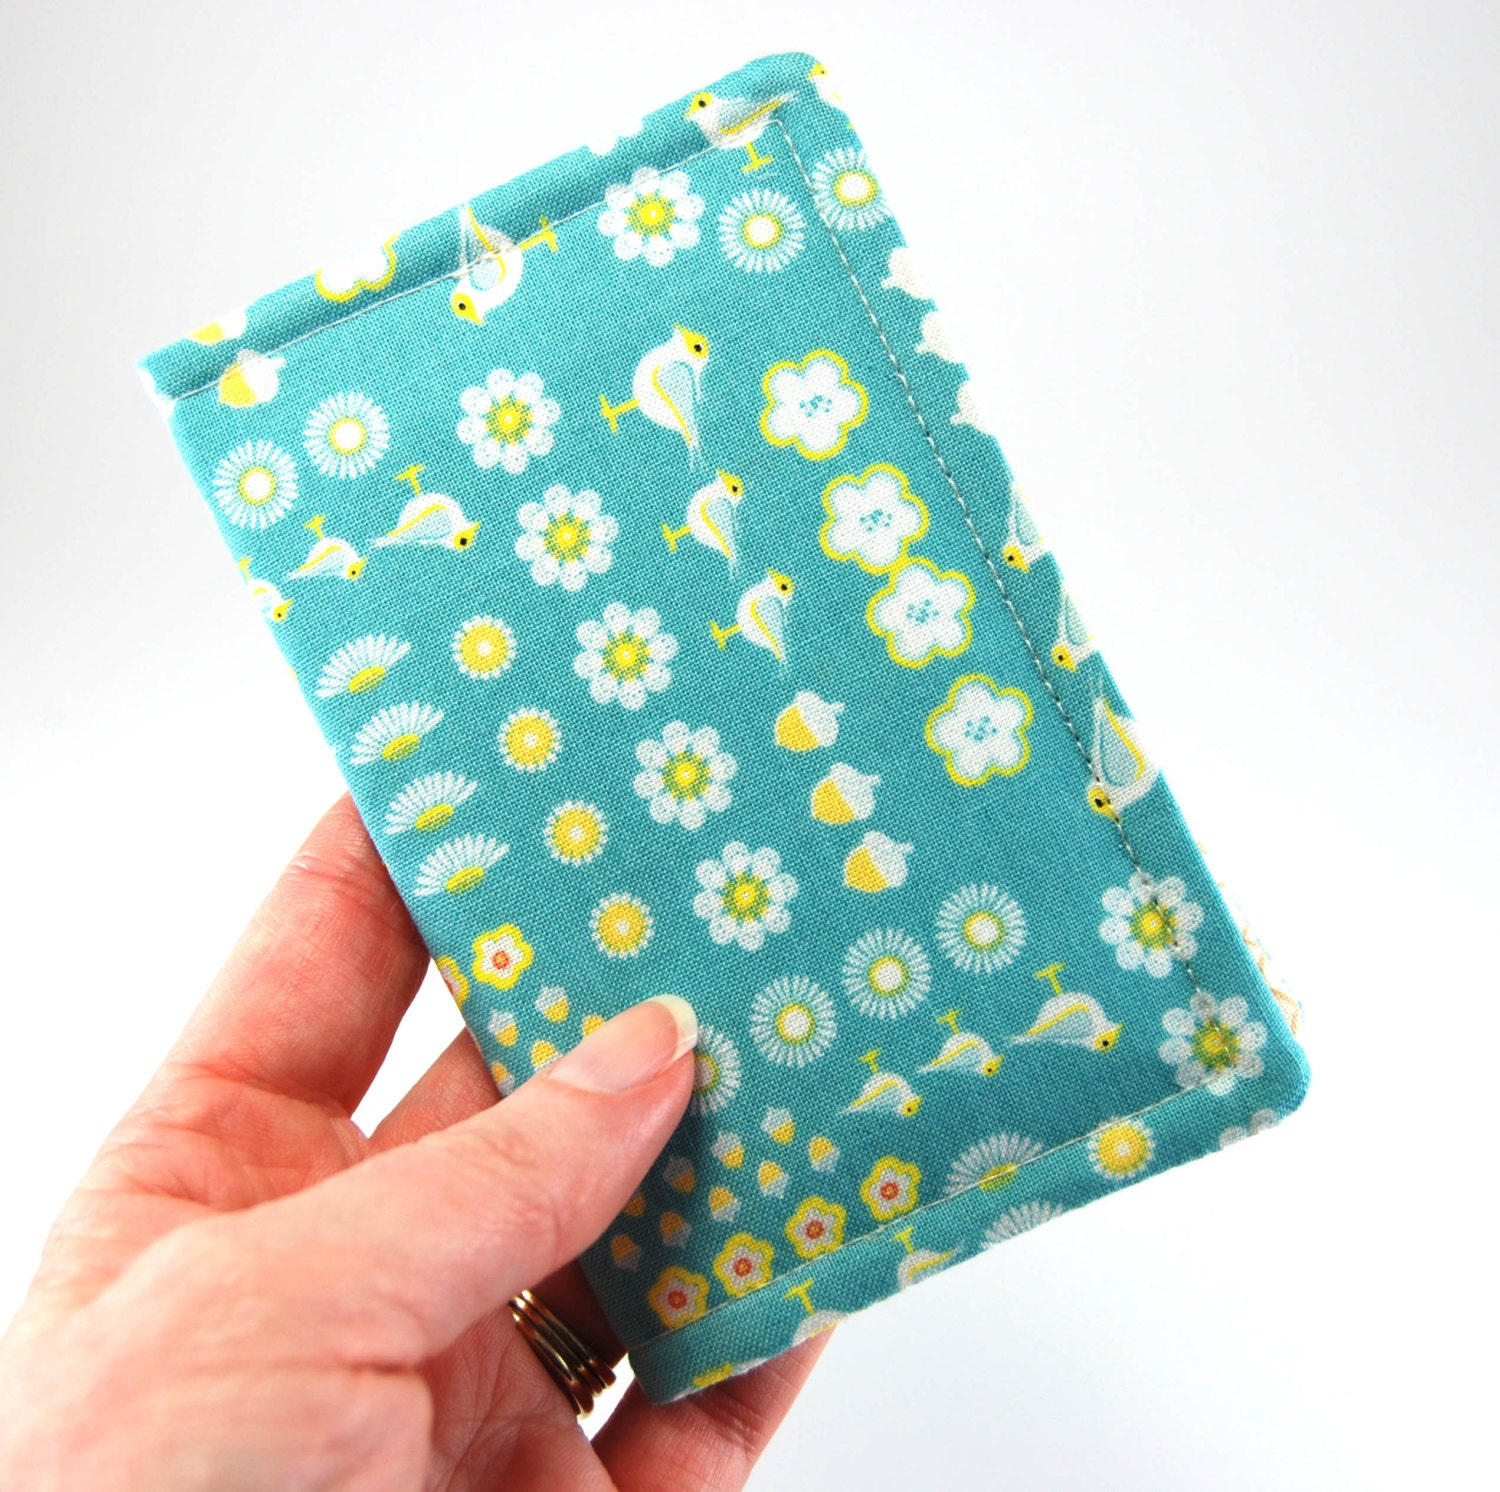 Business Card Holder, Fabric Card Case, Gift Card, Card Carrier, Credit Card Holder, aqua birds daisies acorns - ChantelandMe